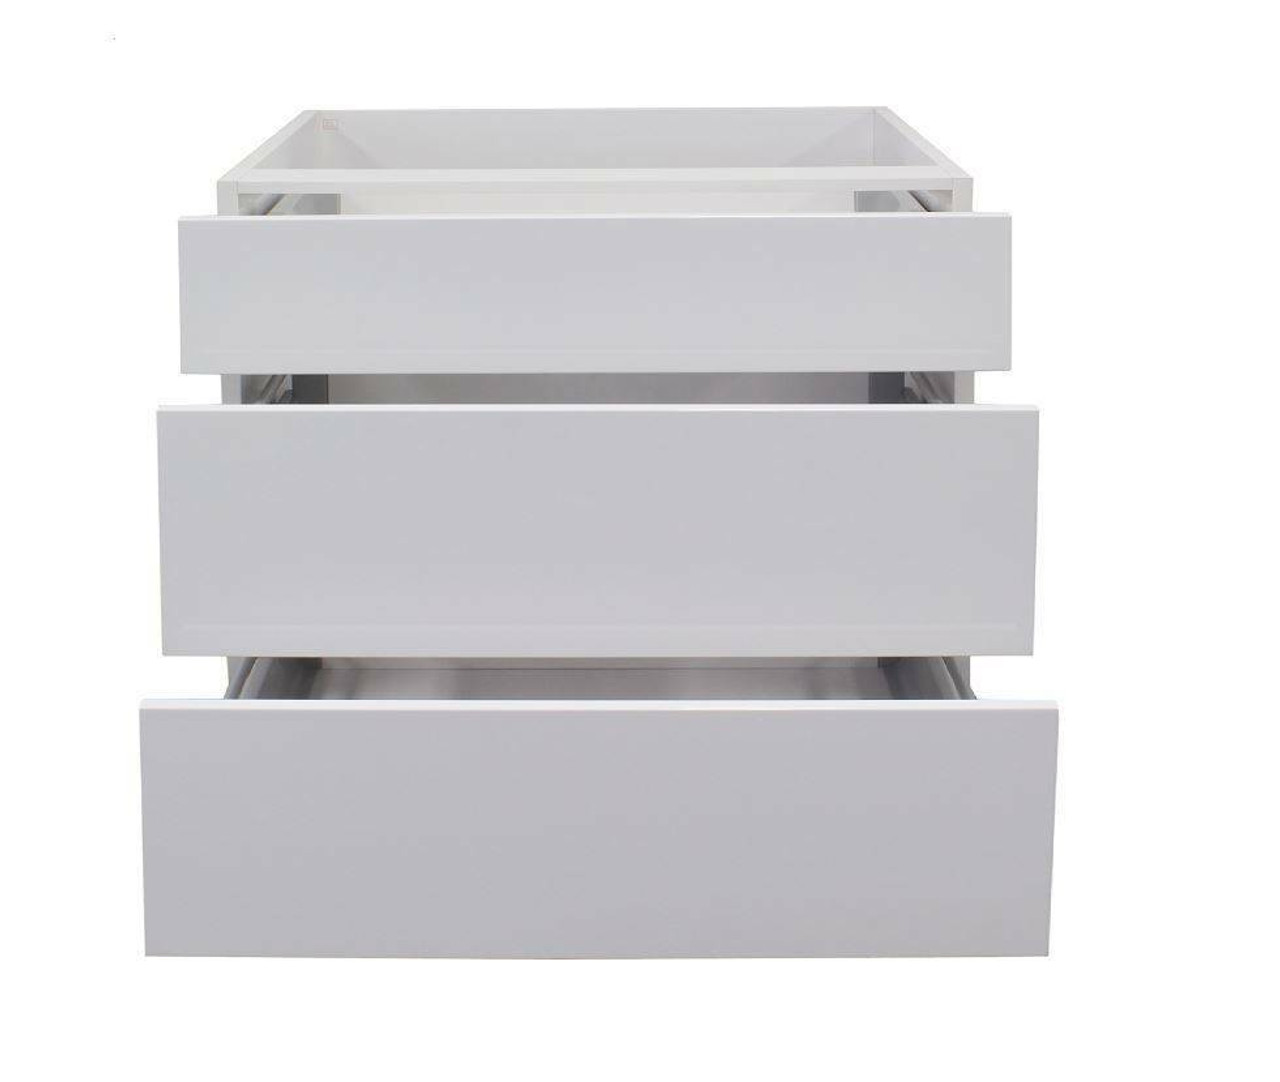 Picture of: Base Cabinet 3 Drawer 800mm The Sink Warehouse Shop Now